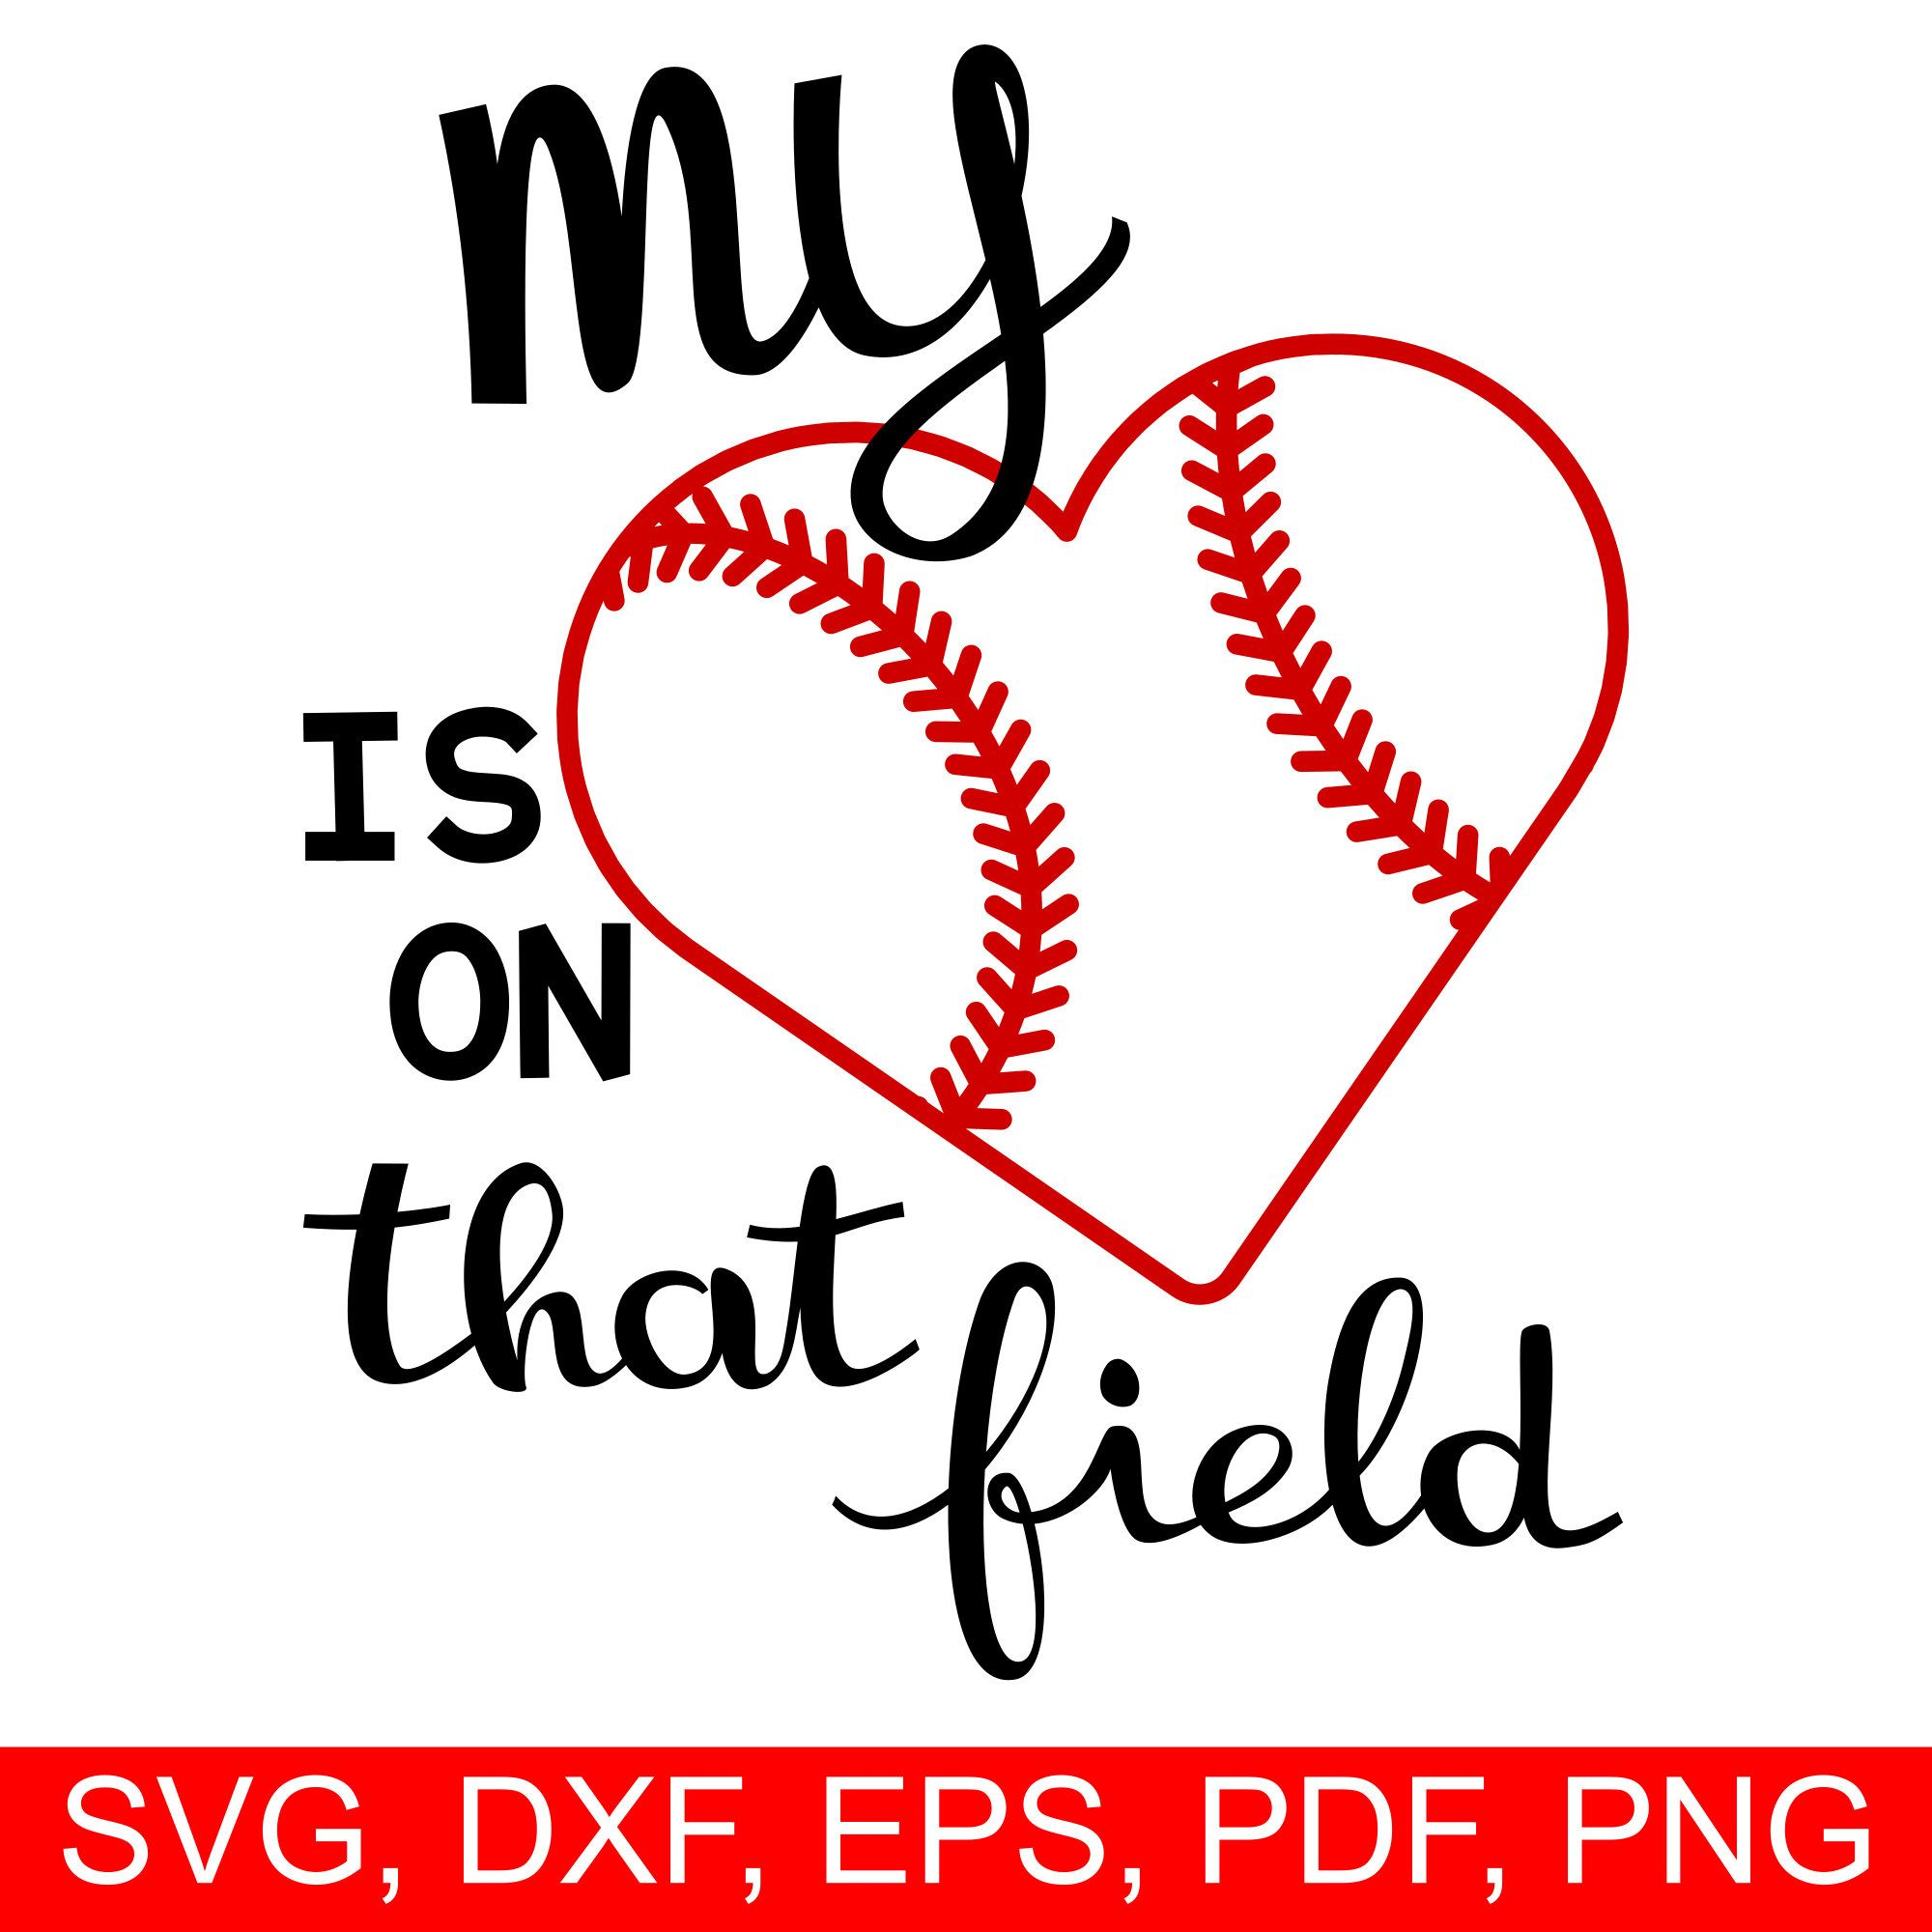 ff3d0b5d23099 Baseball SVG file to make Baseball gifts for Mom. A great Baseball shirt  for Mom design with the Baseball saying My Heart is on that Field SVG file  and a ...